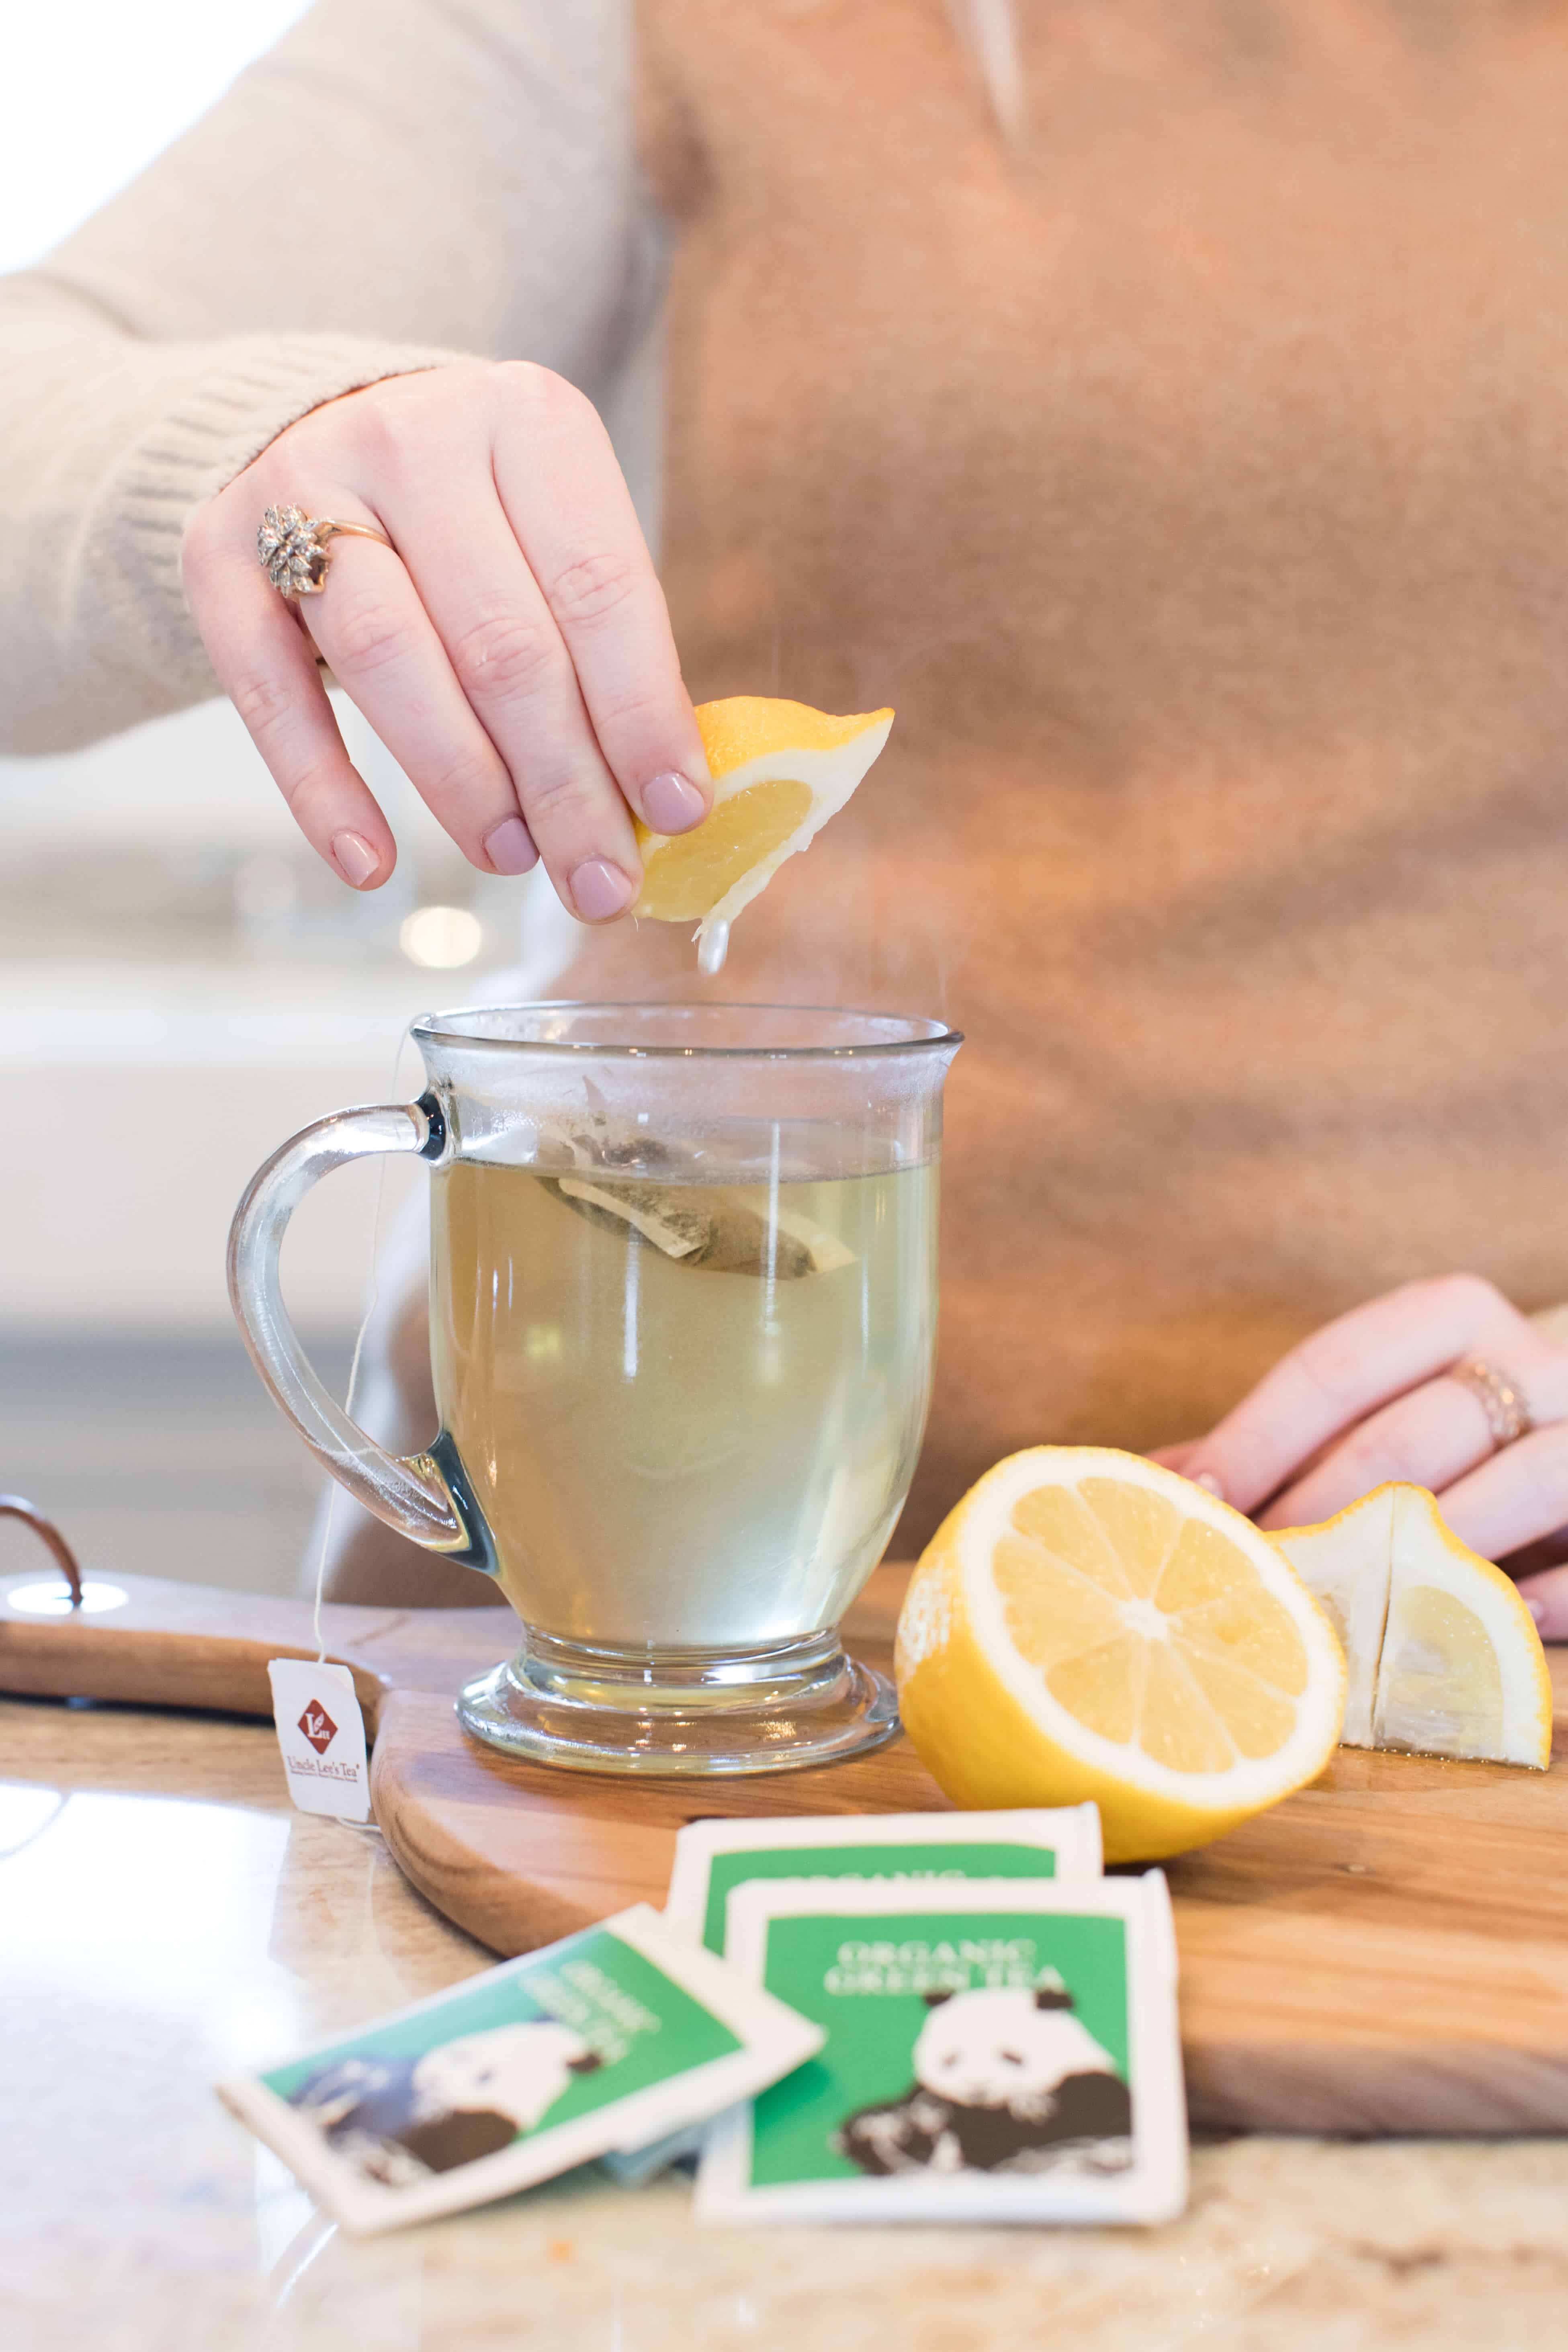 What You Need To Know About Anti-Inflammatory Diets #saveeandsavory #whatyouneedtoknow #antiinflammatorydiets #healthylifestyle #greentea